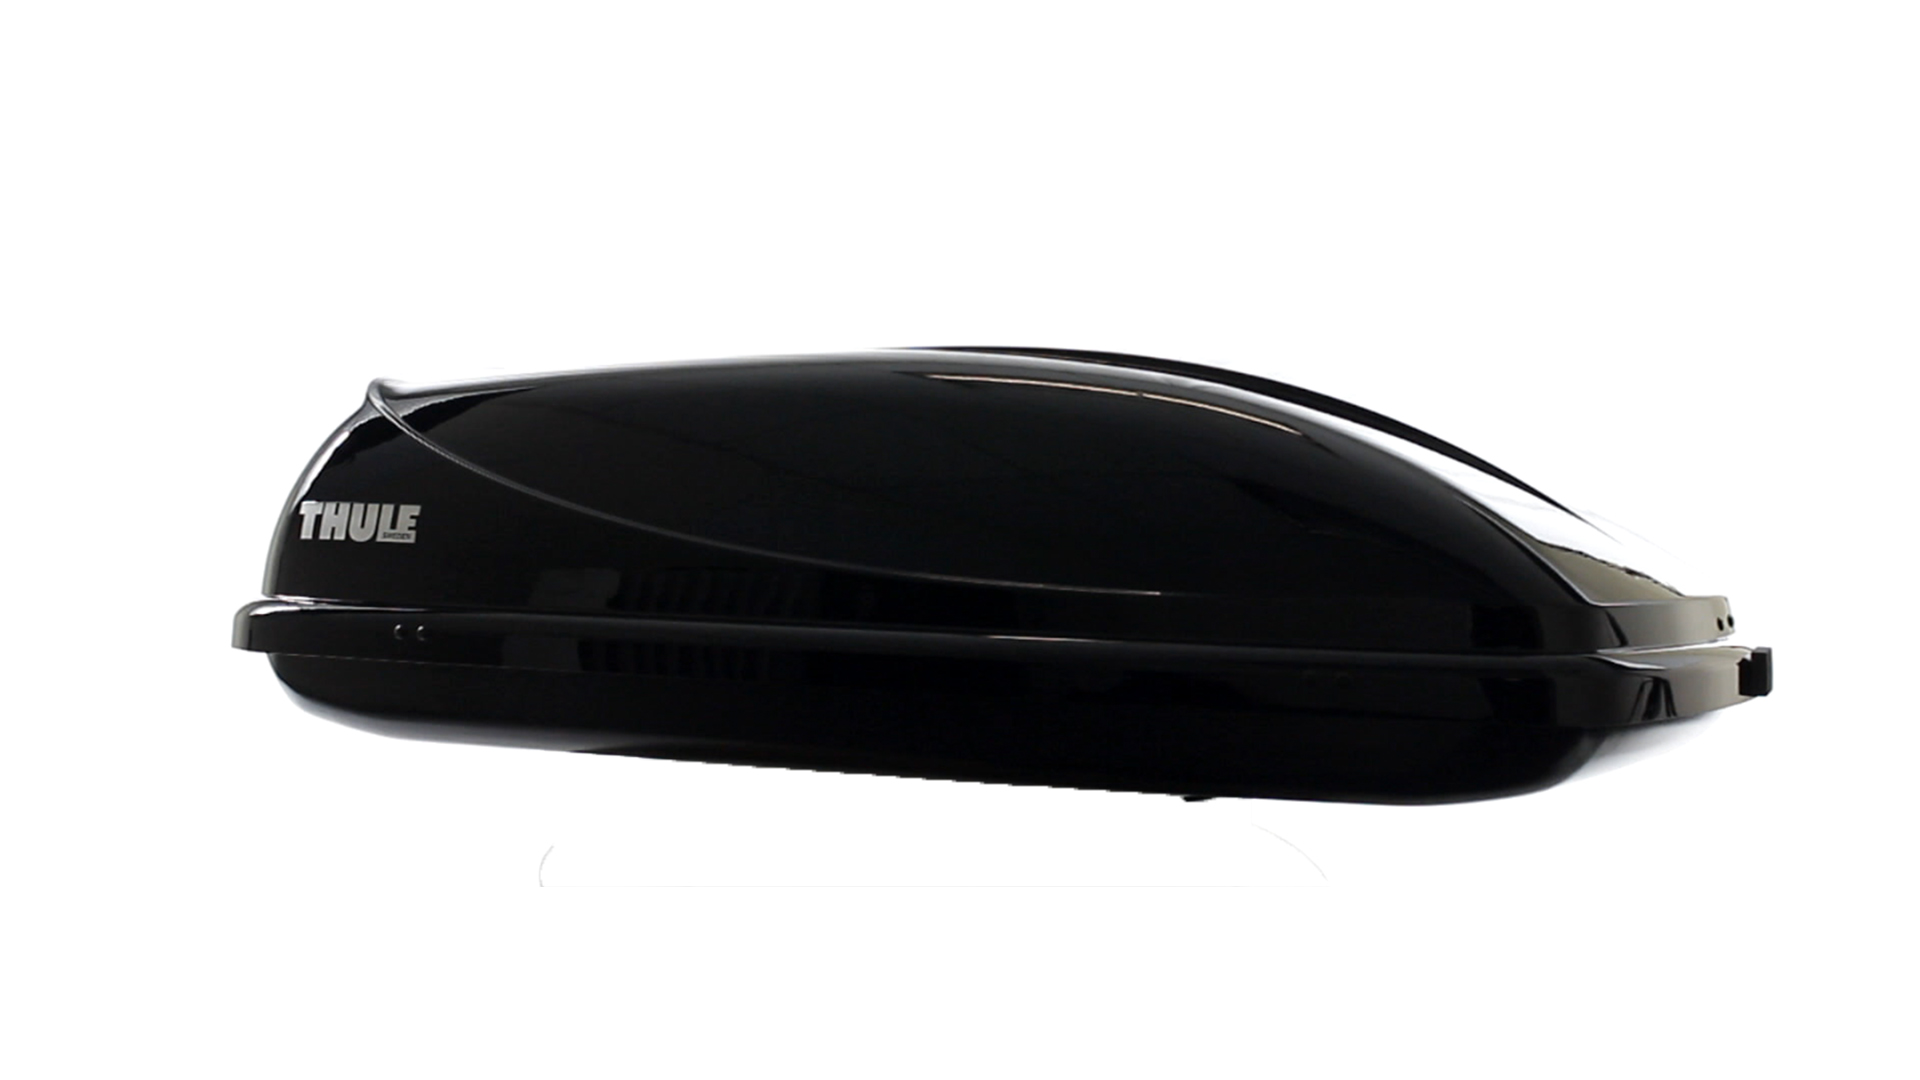 Thule Ocean 100 Roof Box